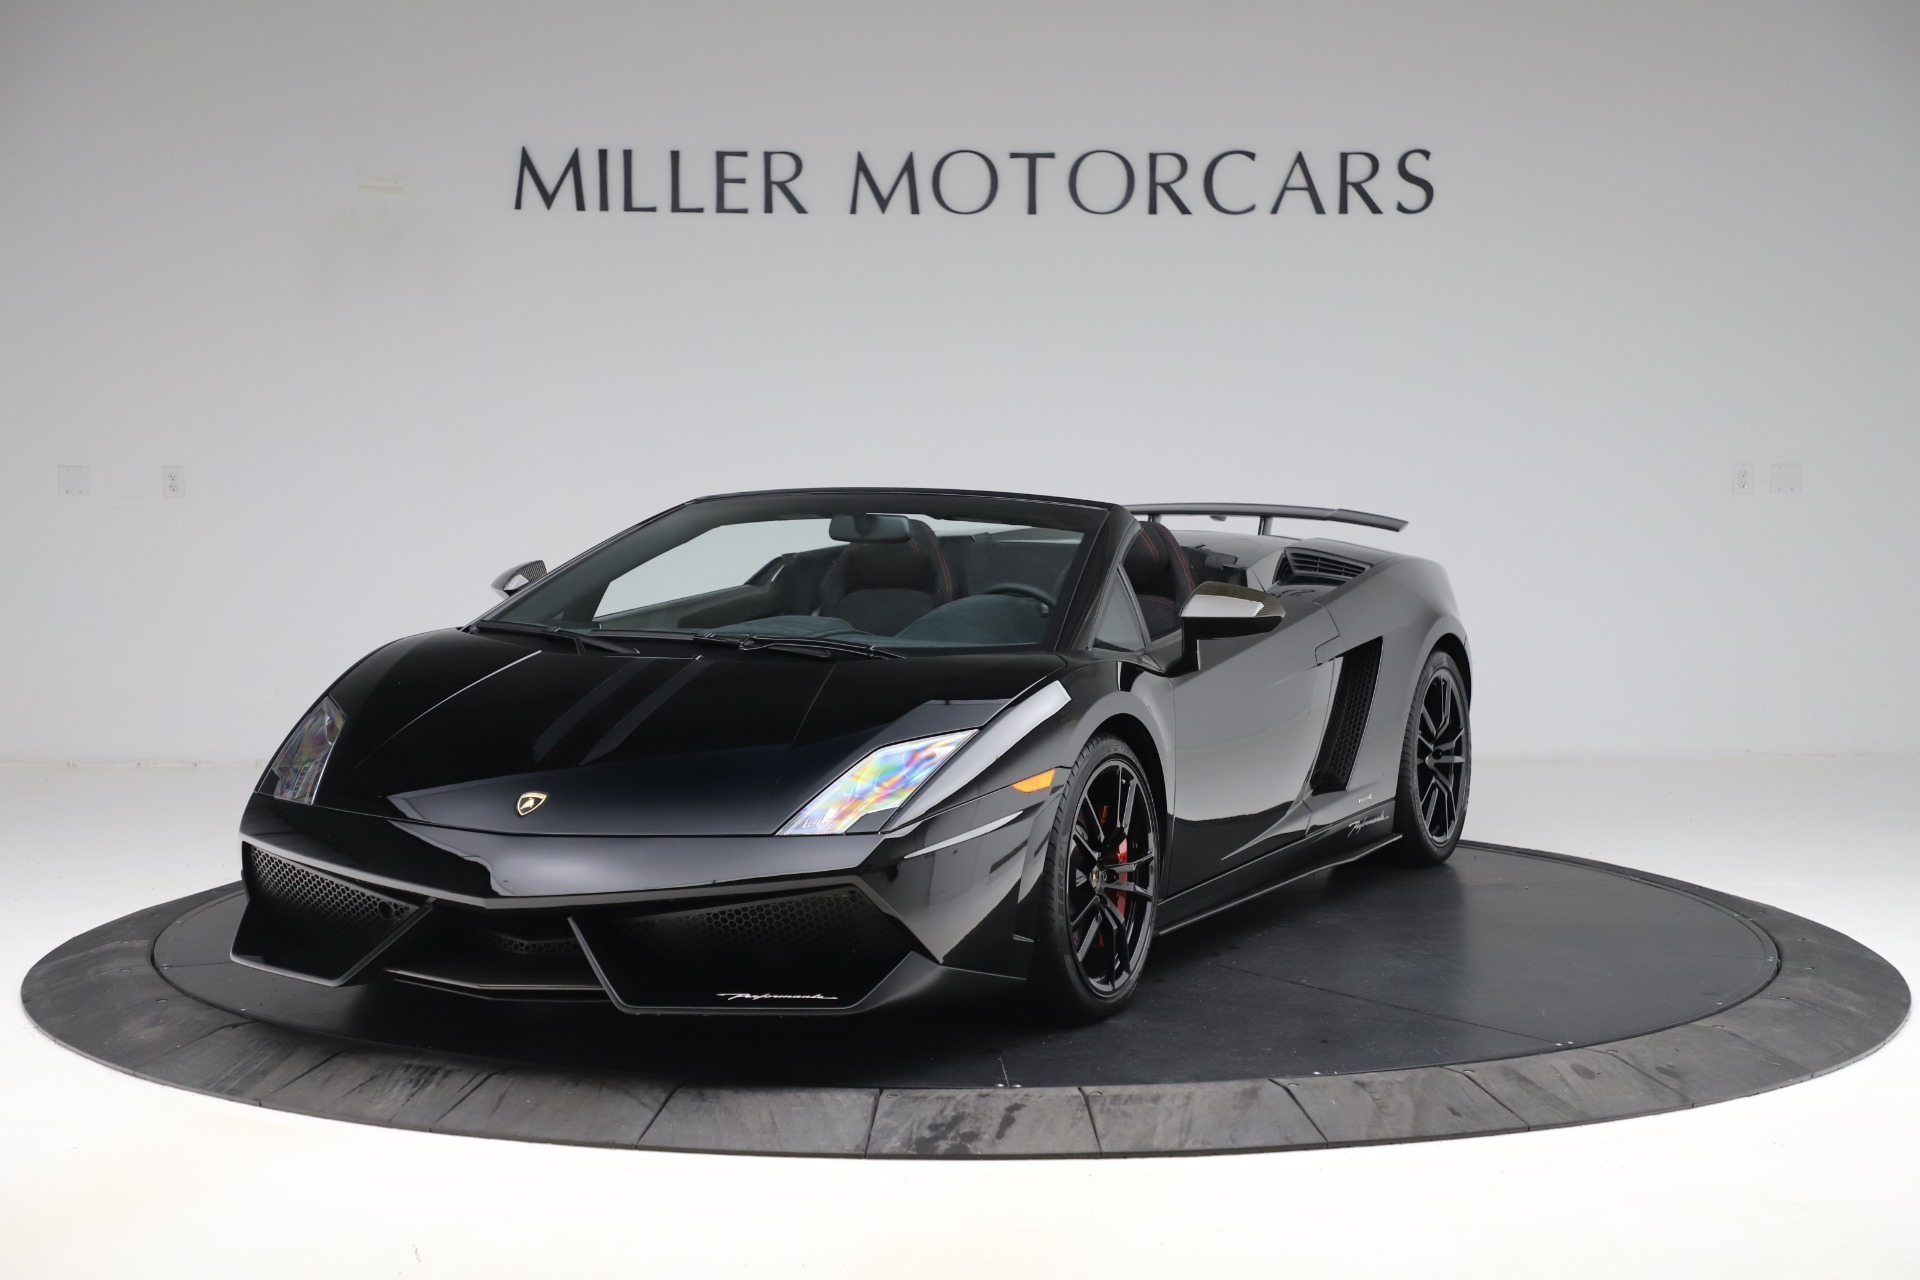 Used 2013 Lamborghini Gallardo LP 570-4 Spyder Performante for sale Sold at Aston Martin of Greenwich in Greenwich CT 06830 1